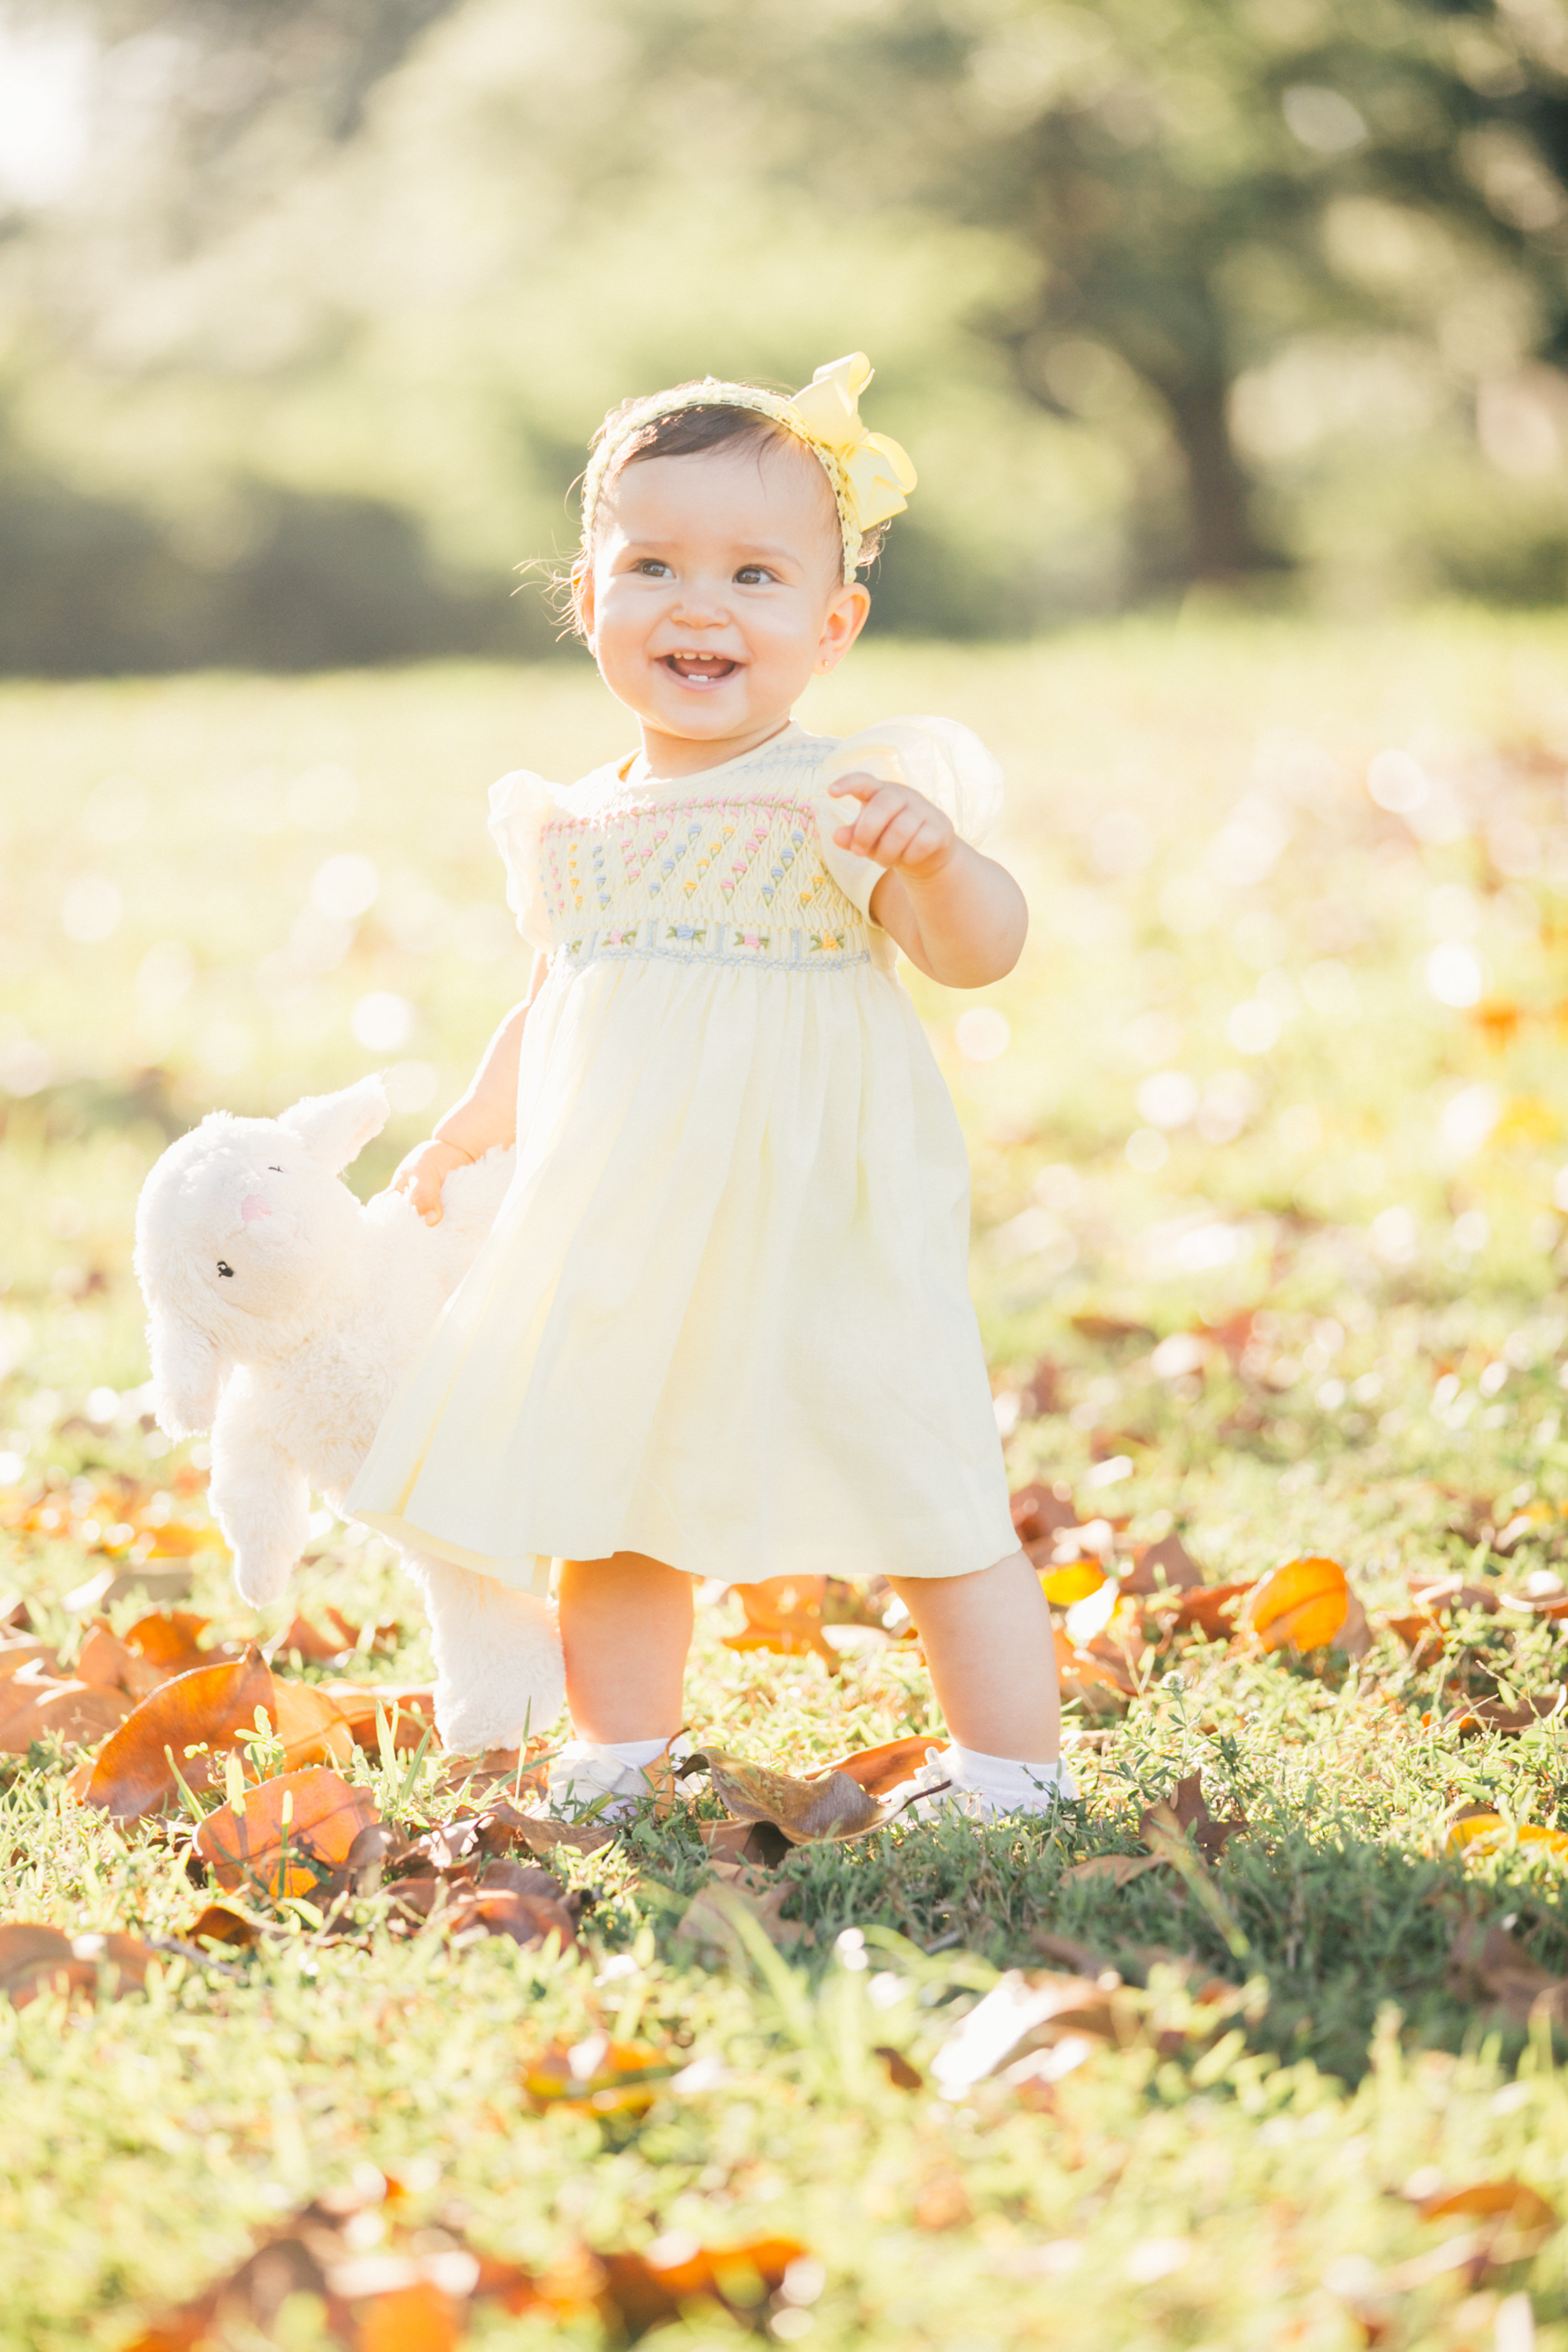 Dipp_2016 Lilian's 1st Birthday-2-Edit.jpg